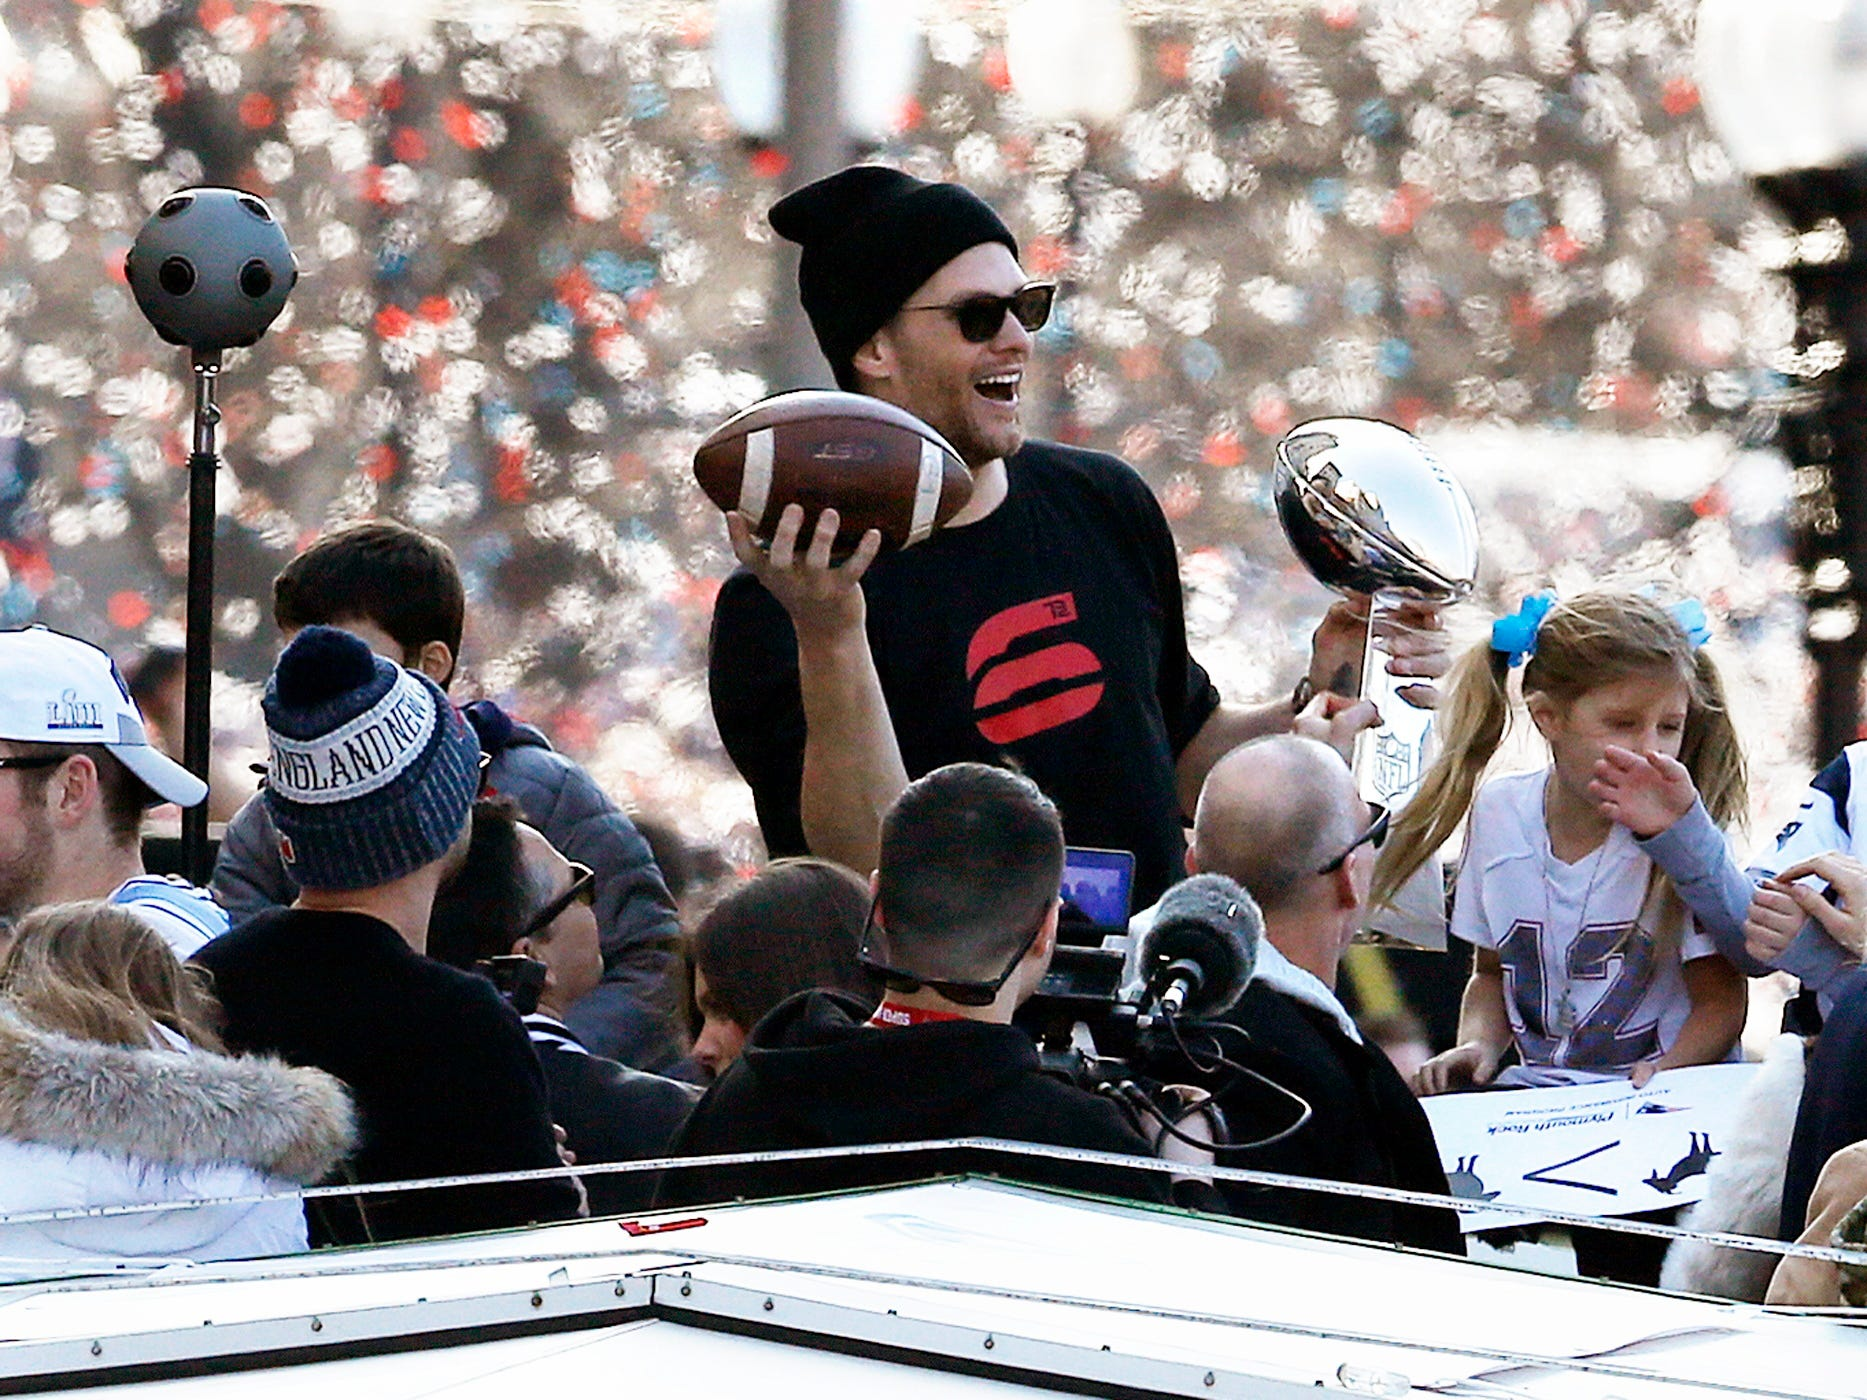 New England Patriots quarterback Tom Brady rides a duck boat during the Patriots parade through downtown Boston, Tuesday, Feb. 5, 2019, to celebrate their win over the Los Angeles Rams in Sunday's Super Bowl LIII in Atlanta.